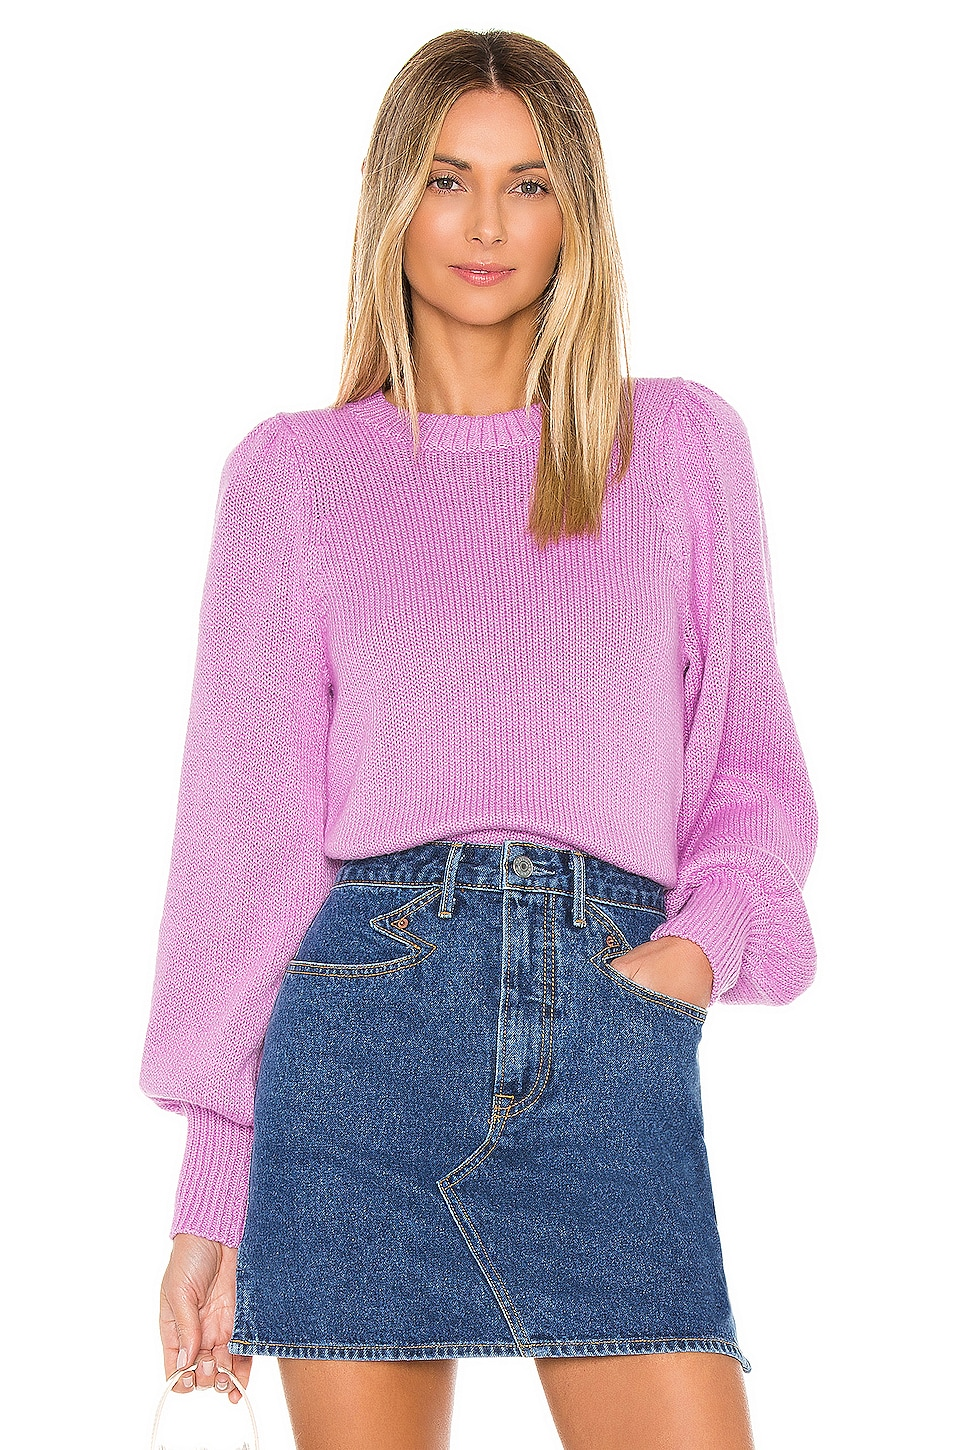 525 america Puff Sleeve Crew in Bright Orchid